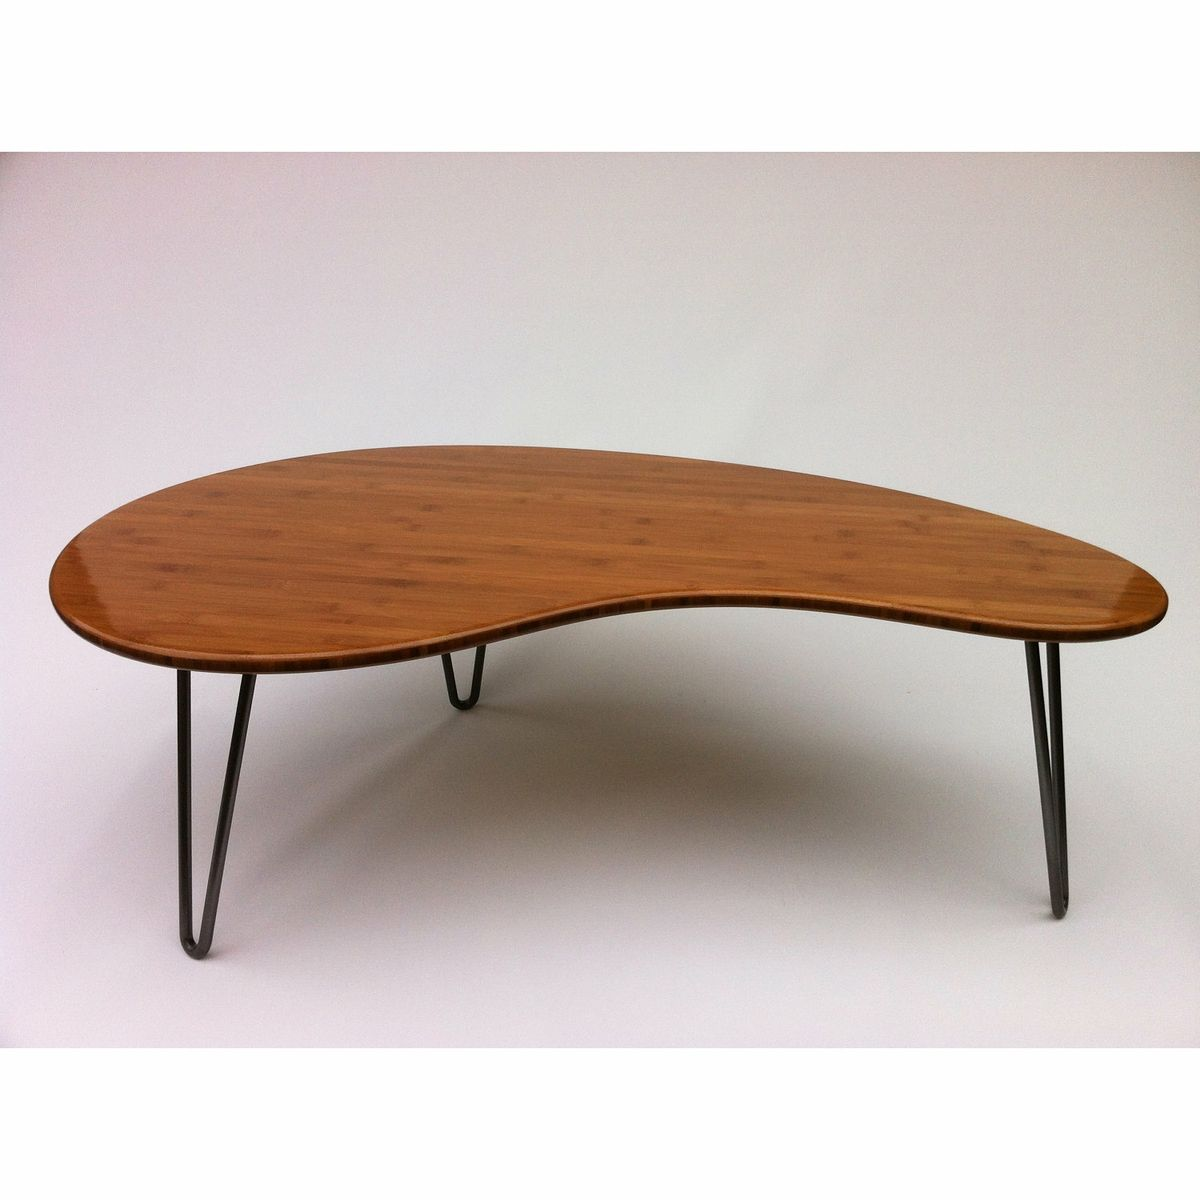 Custom Made Coffee Table Kidney Bean Shaped Atomic Eames Era Boomerang Design Mcm Inspired